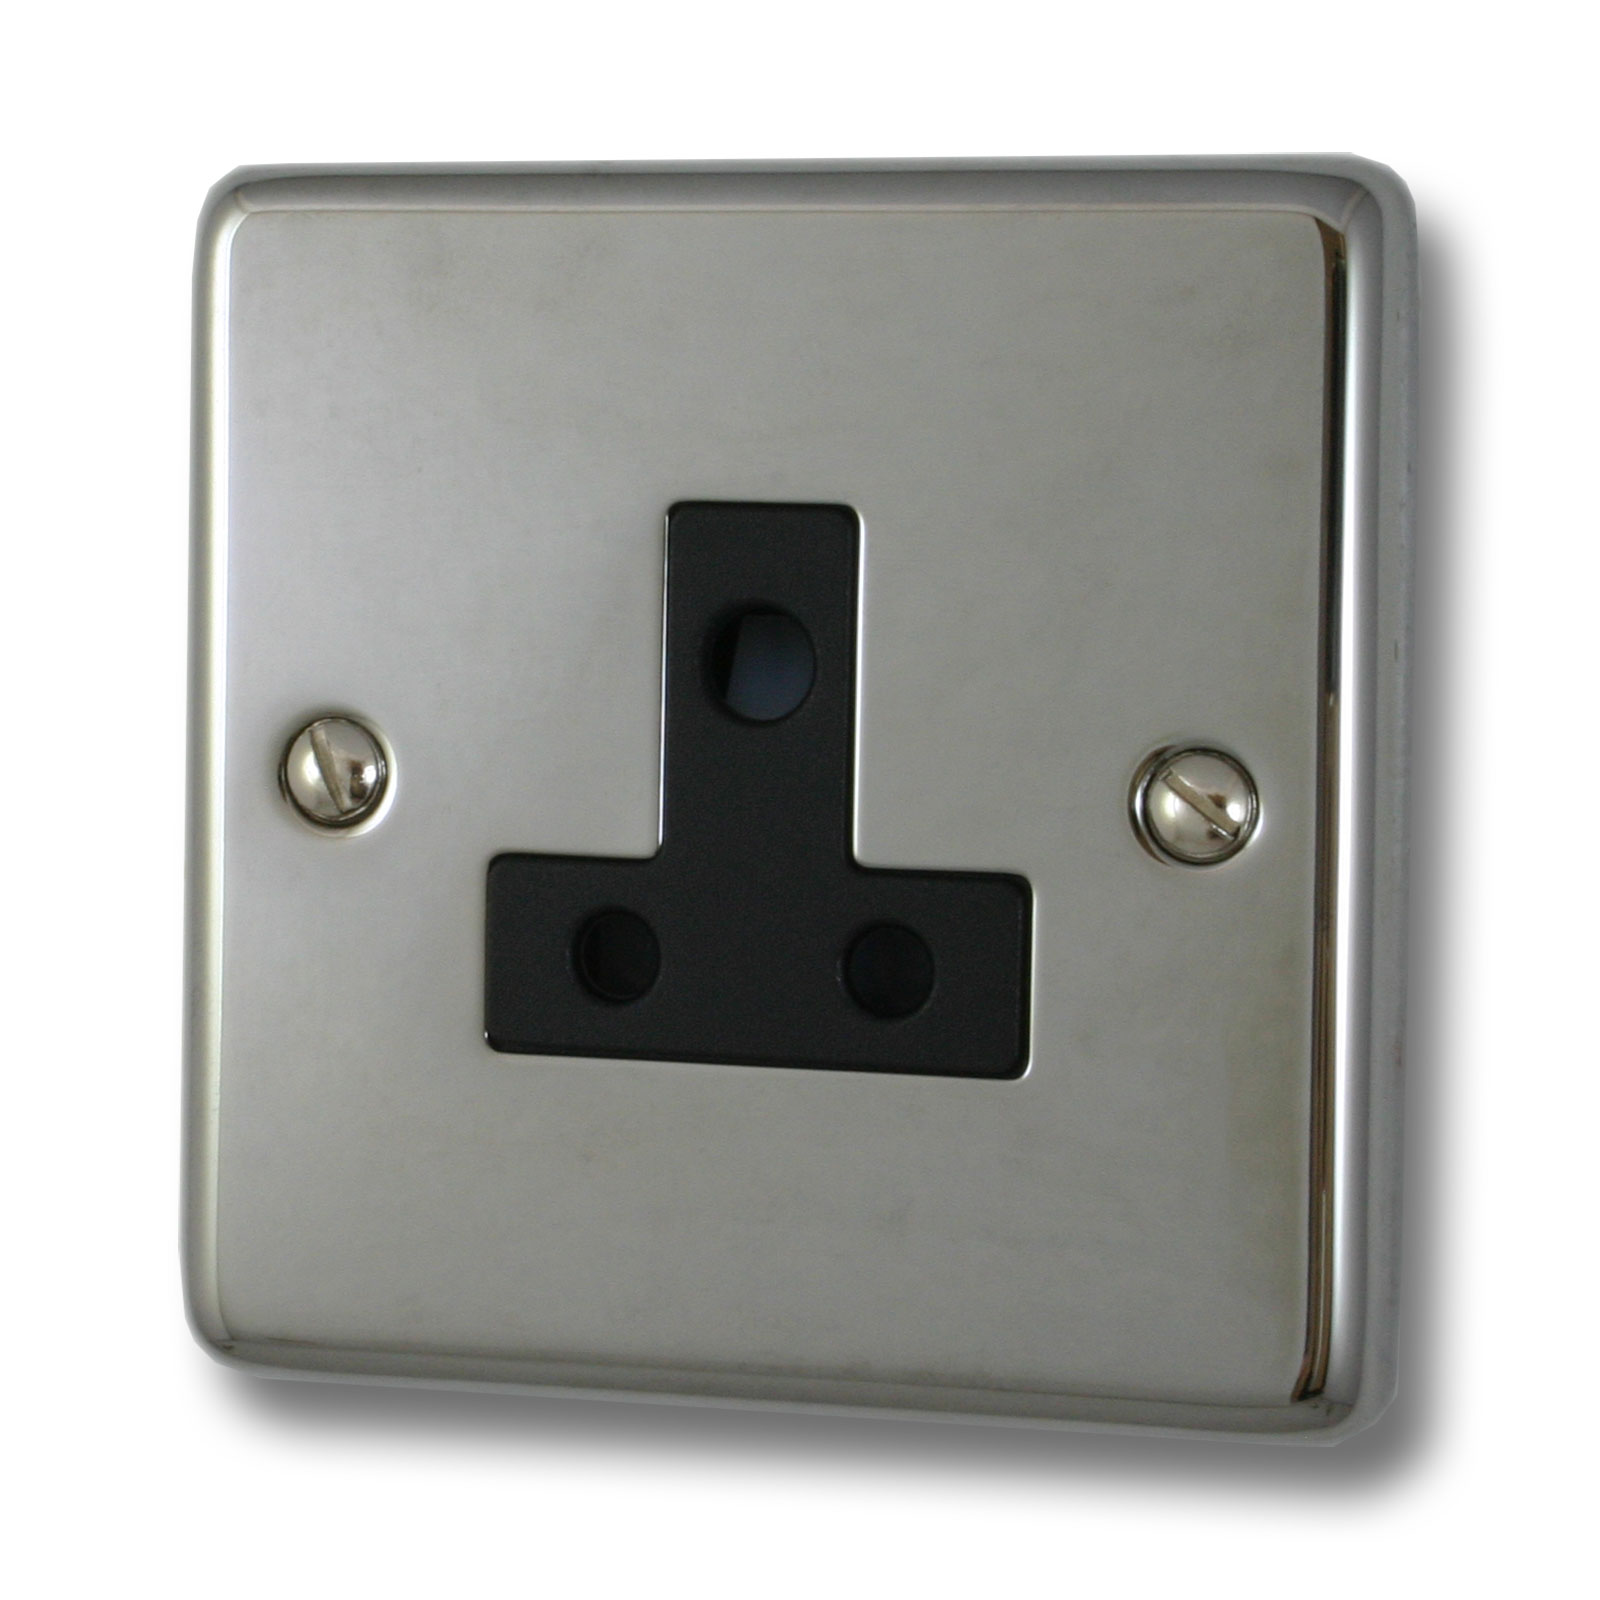 Chrome and metal finishes for electrical sockets